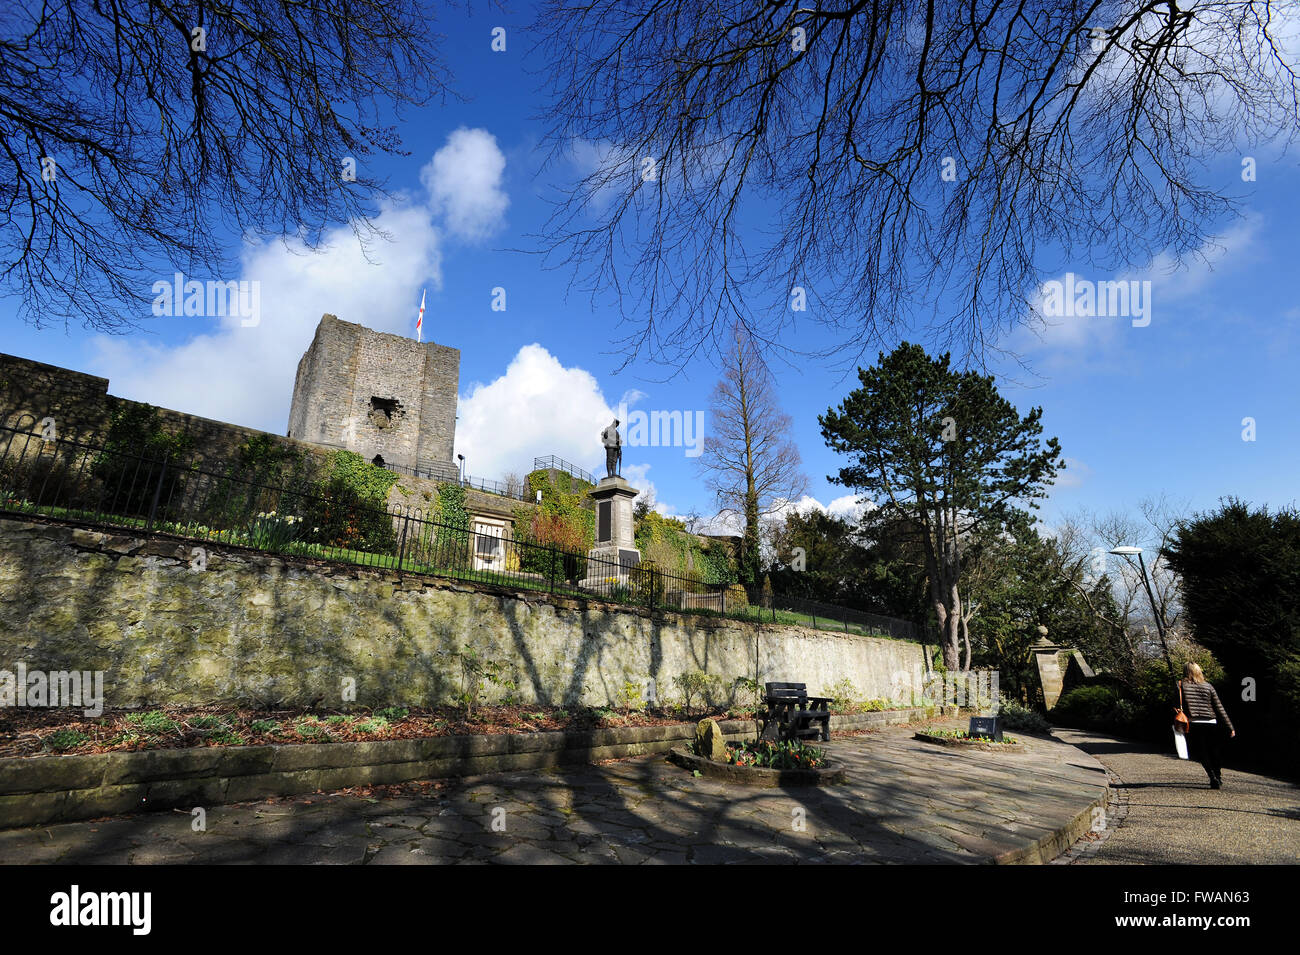 Clitheroe Castle, Clitheroe, Lancashire. Picture by Paul Heyes, Thursday March 31, 2016. - Stock Image